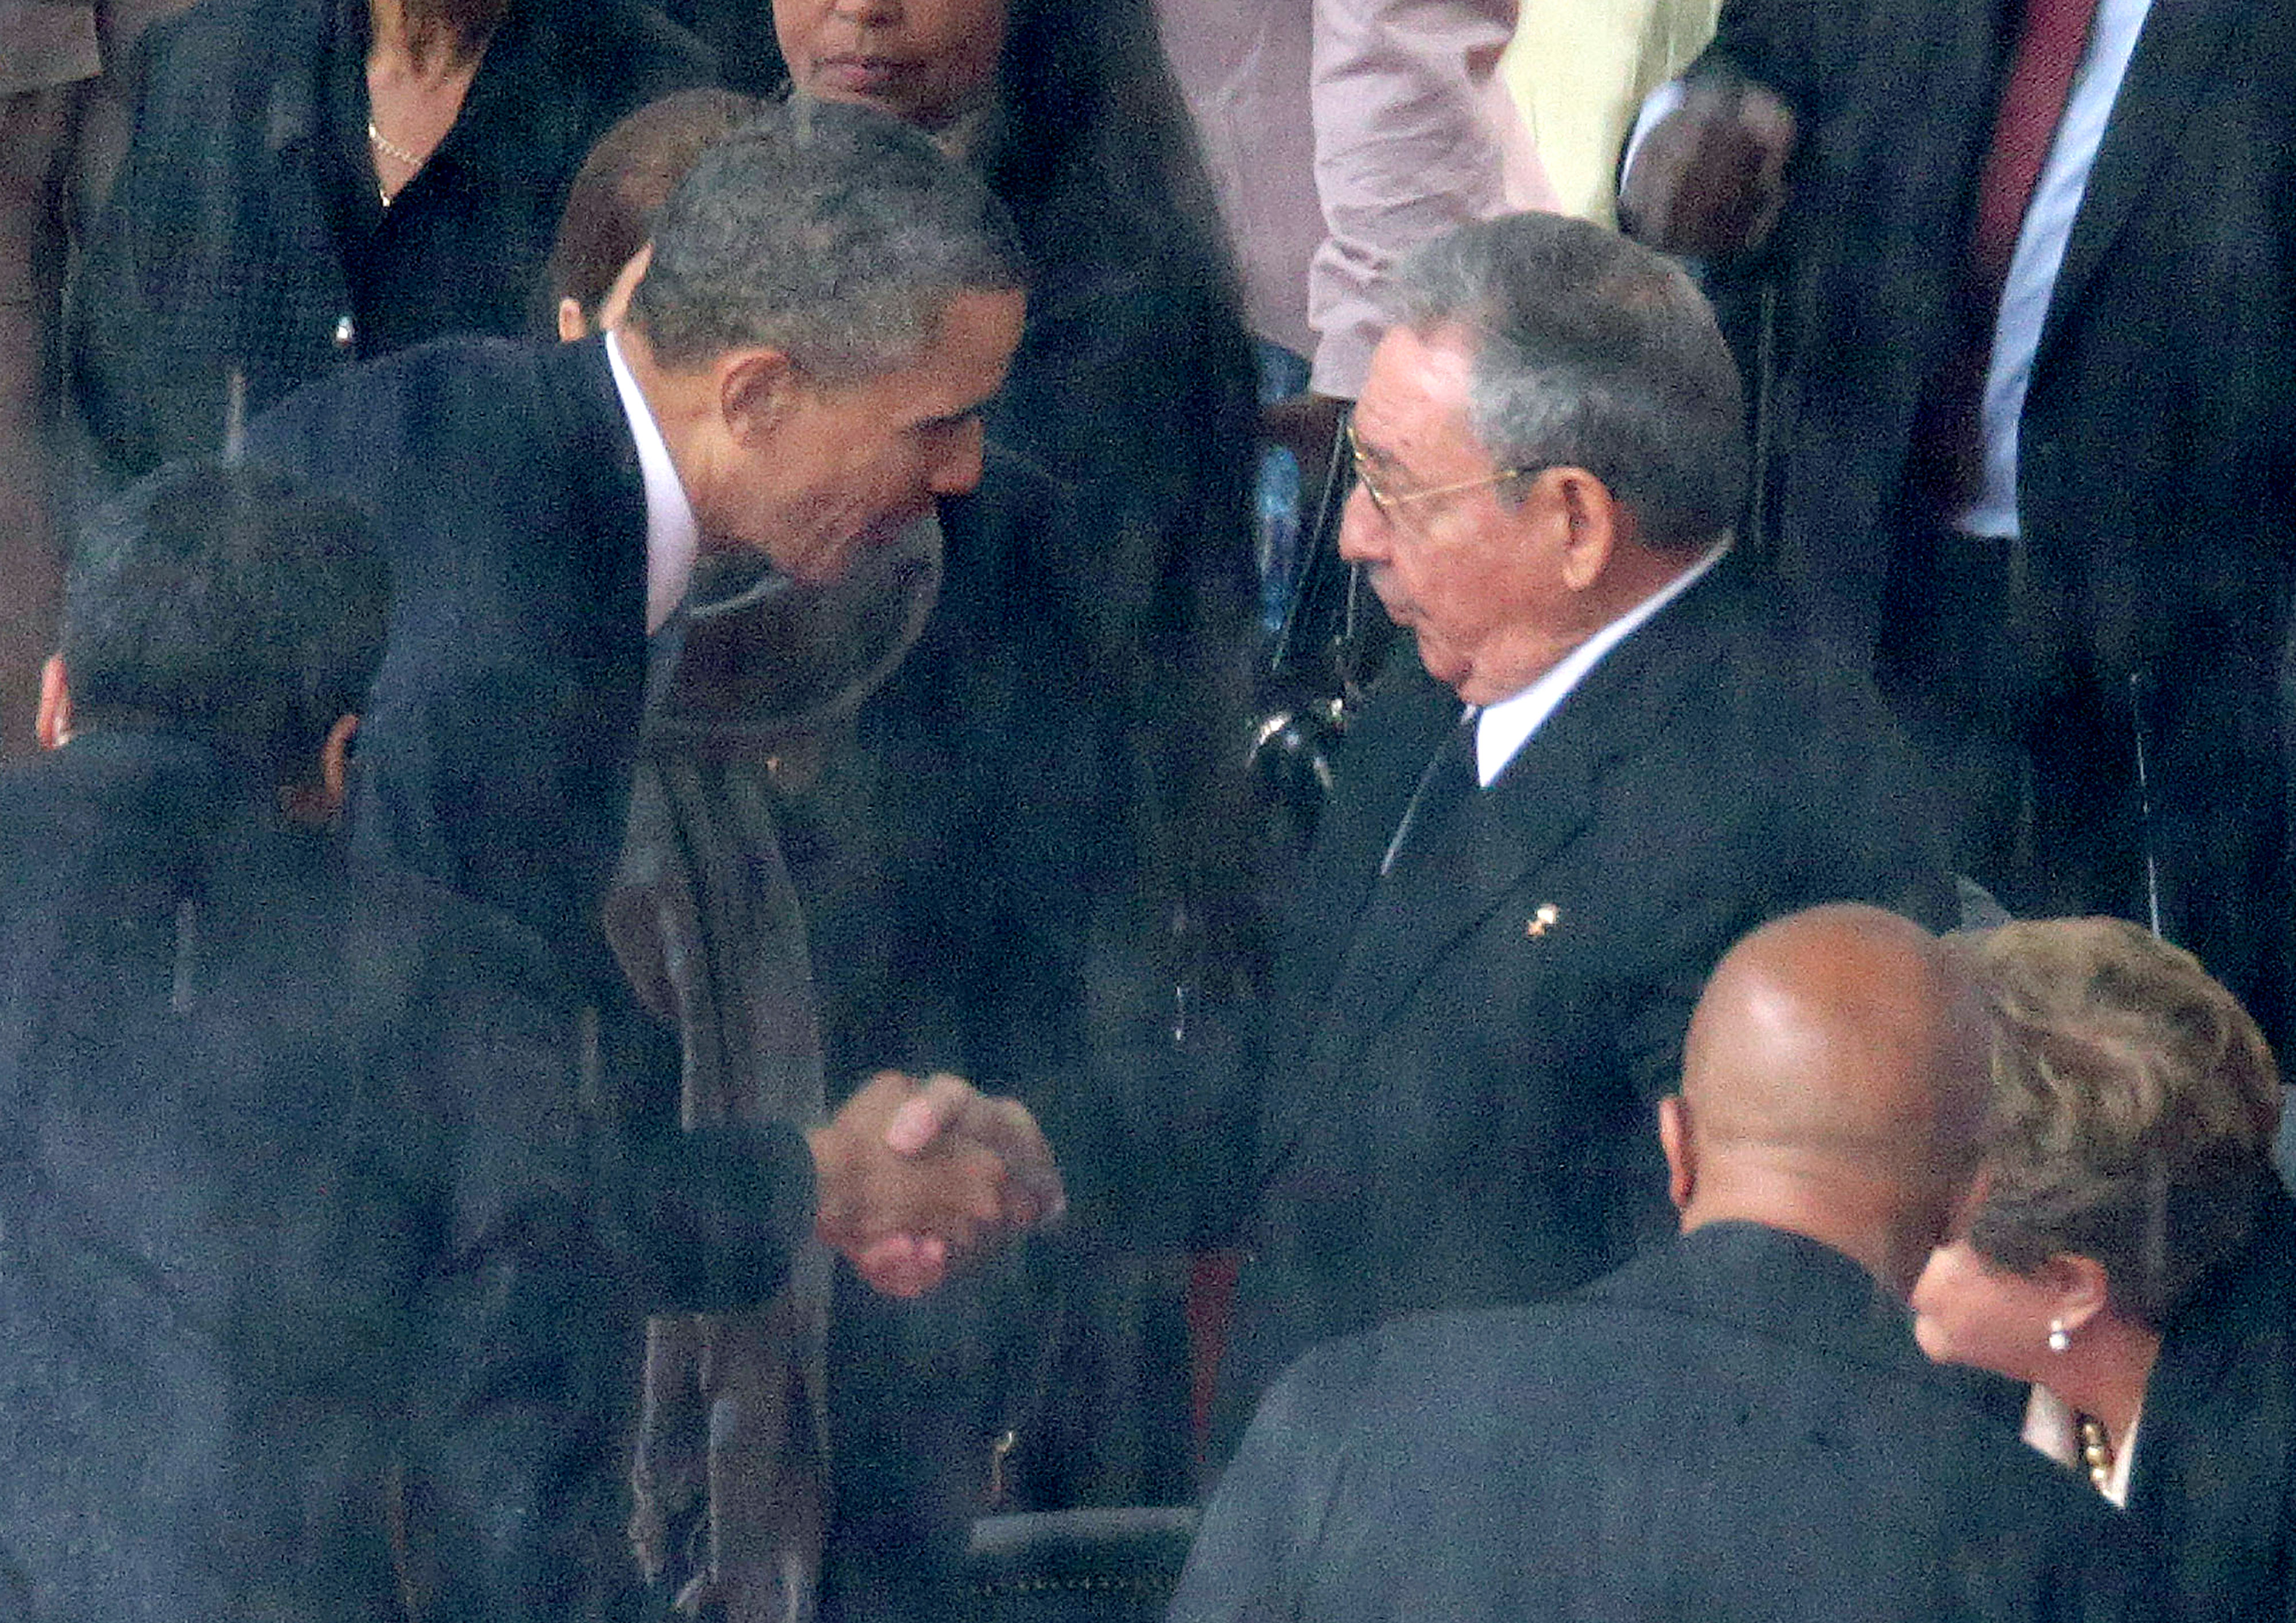 President Barack Obama shakes hands with Cuban President Raul Castro during the official memorial service for former South African President Nelson Mandela at FNB Stadium December 10, 2013 in Johannesburg, South Africa.